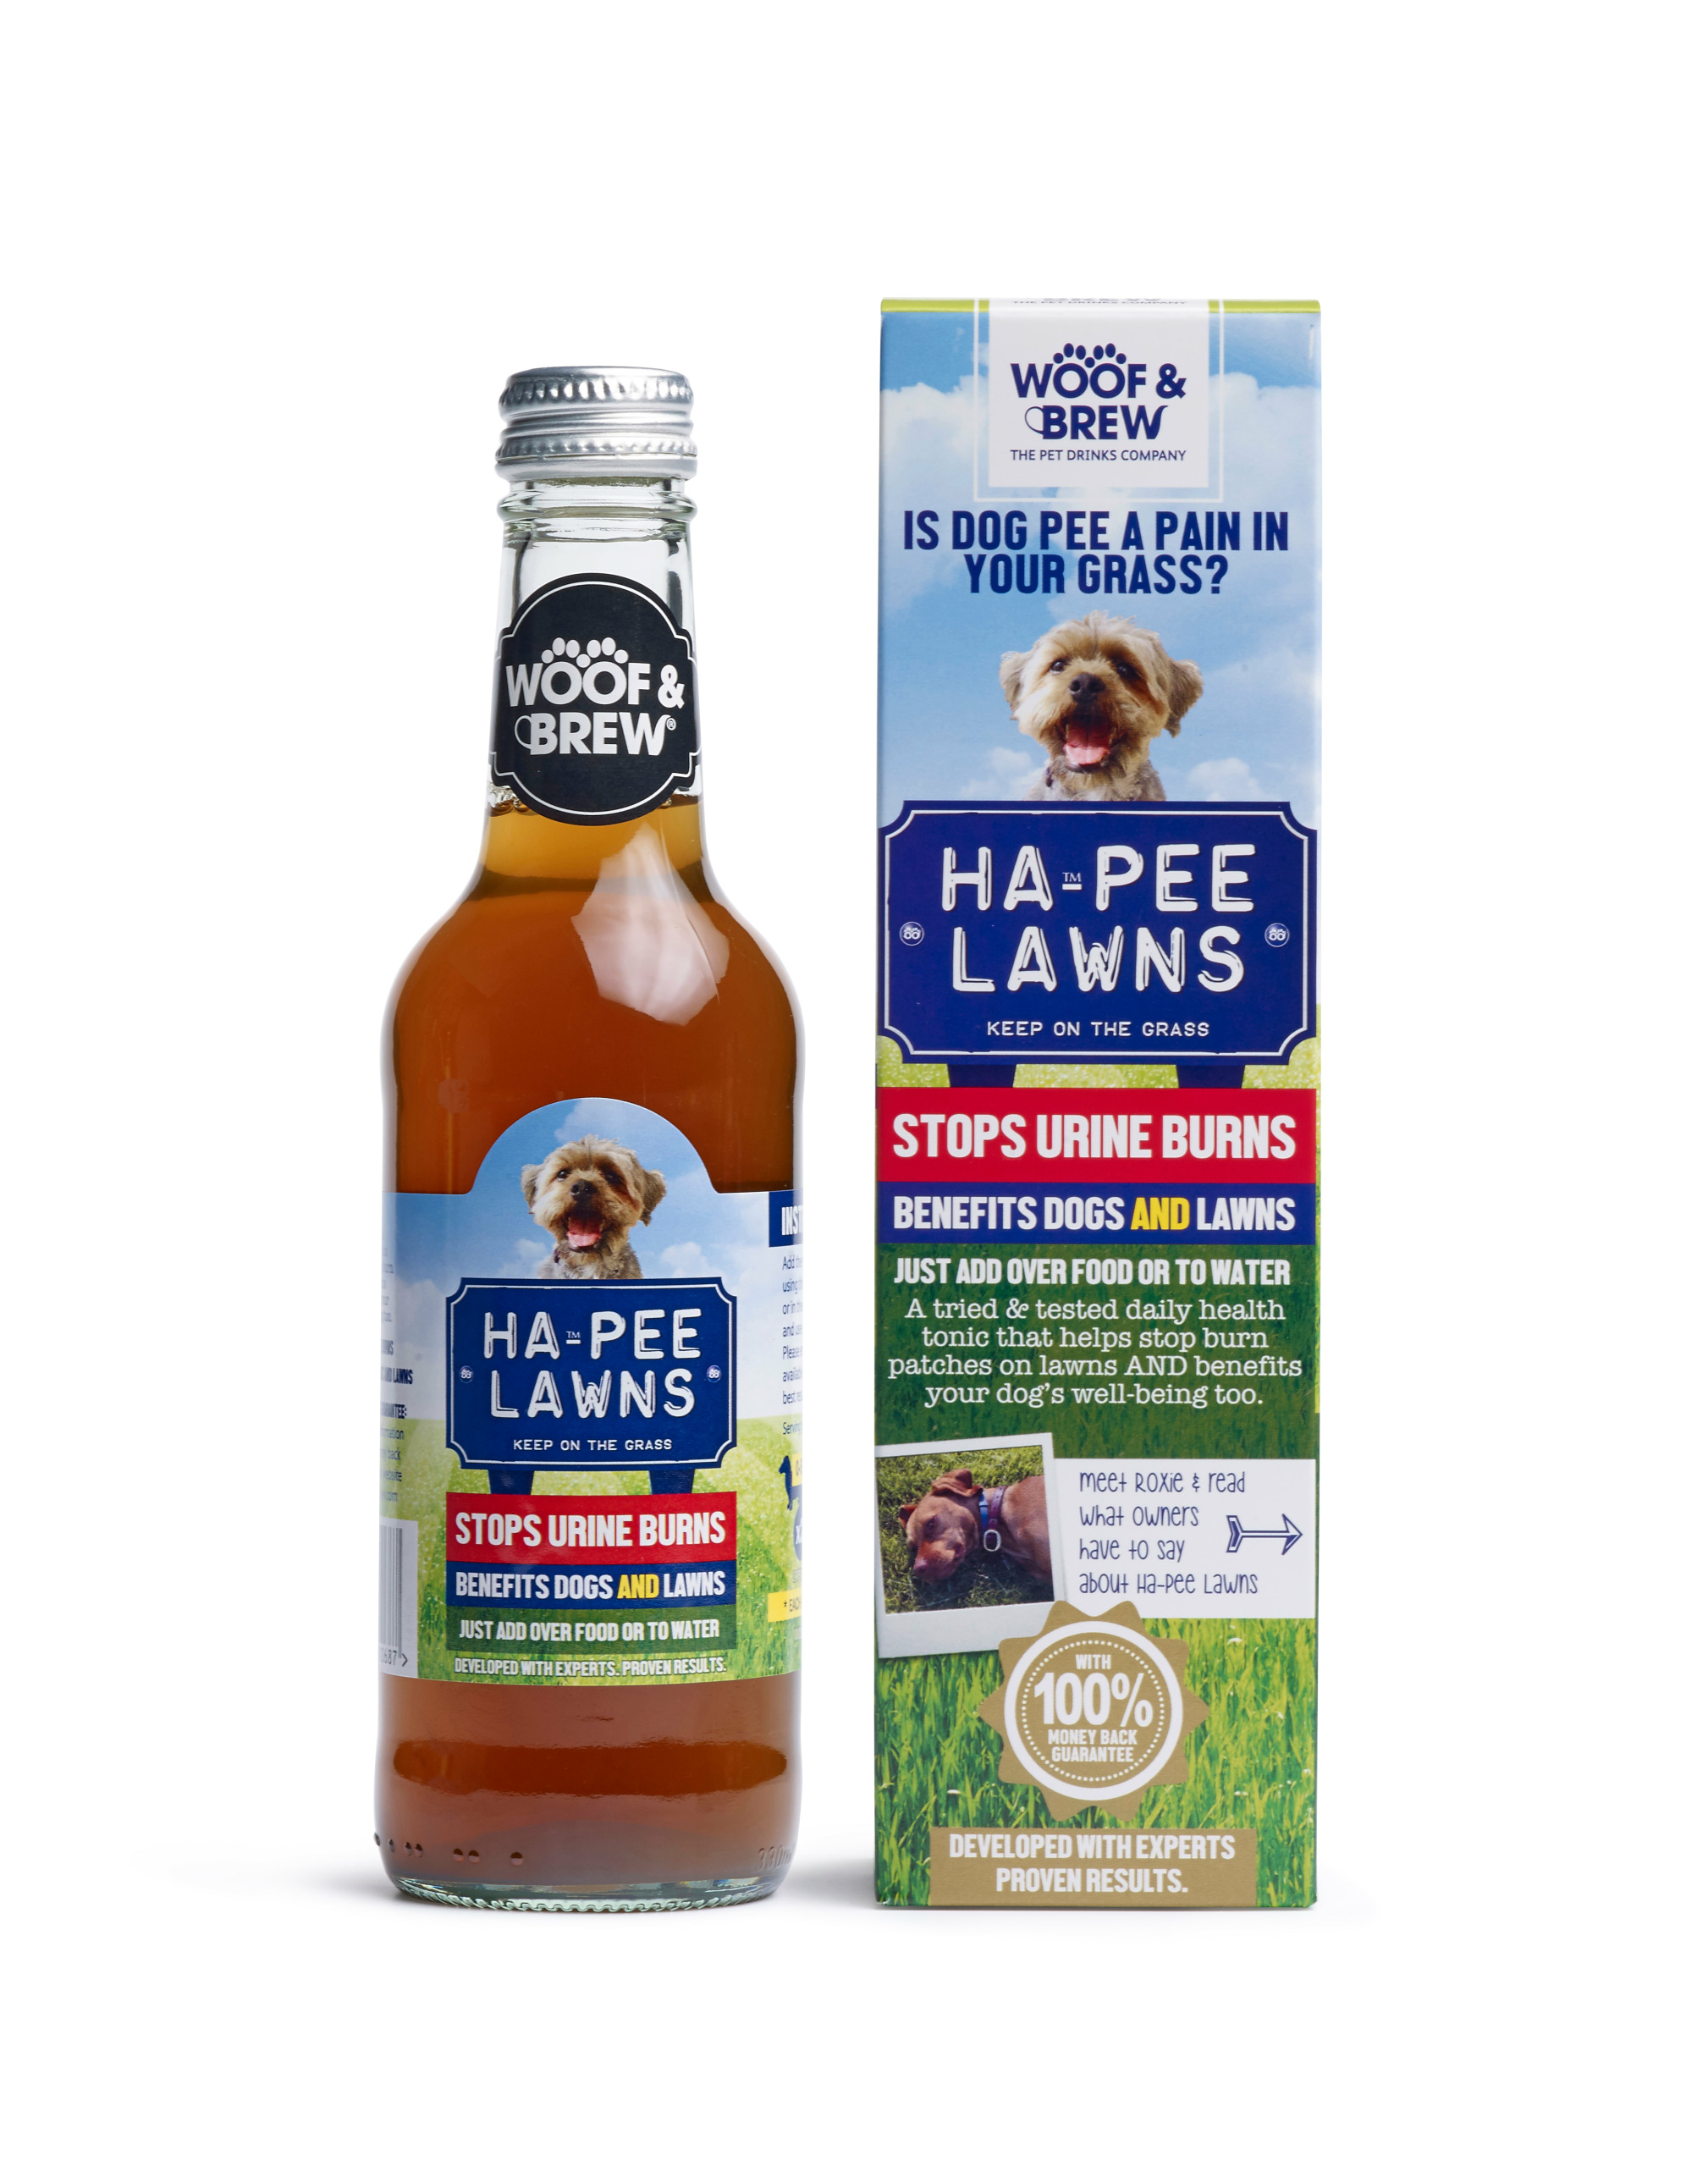 HA-PEE LAWNS - STOP URINE BURNS